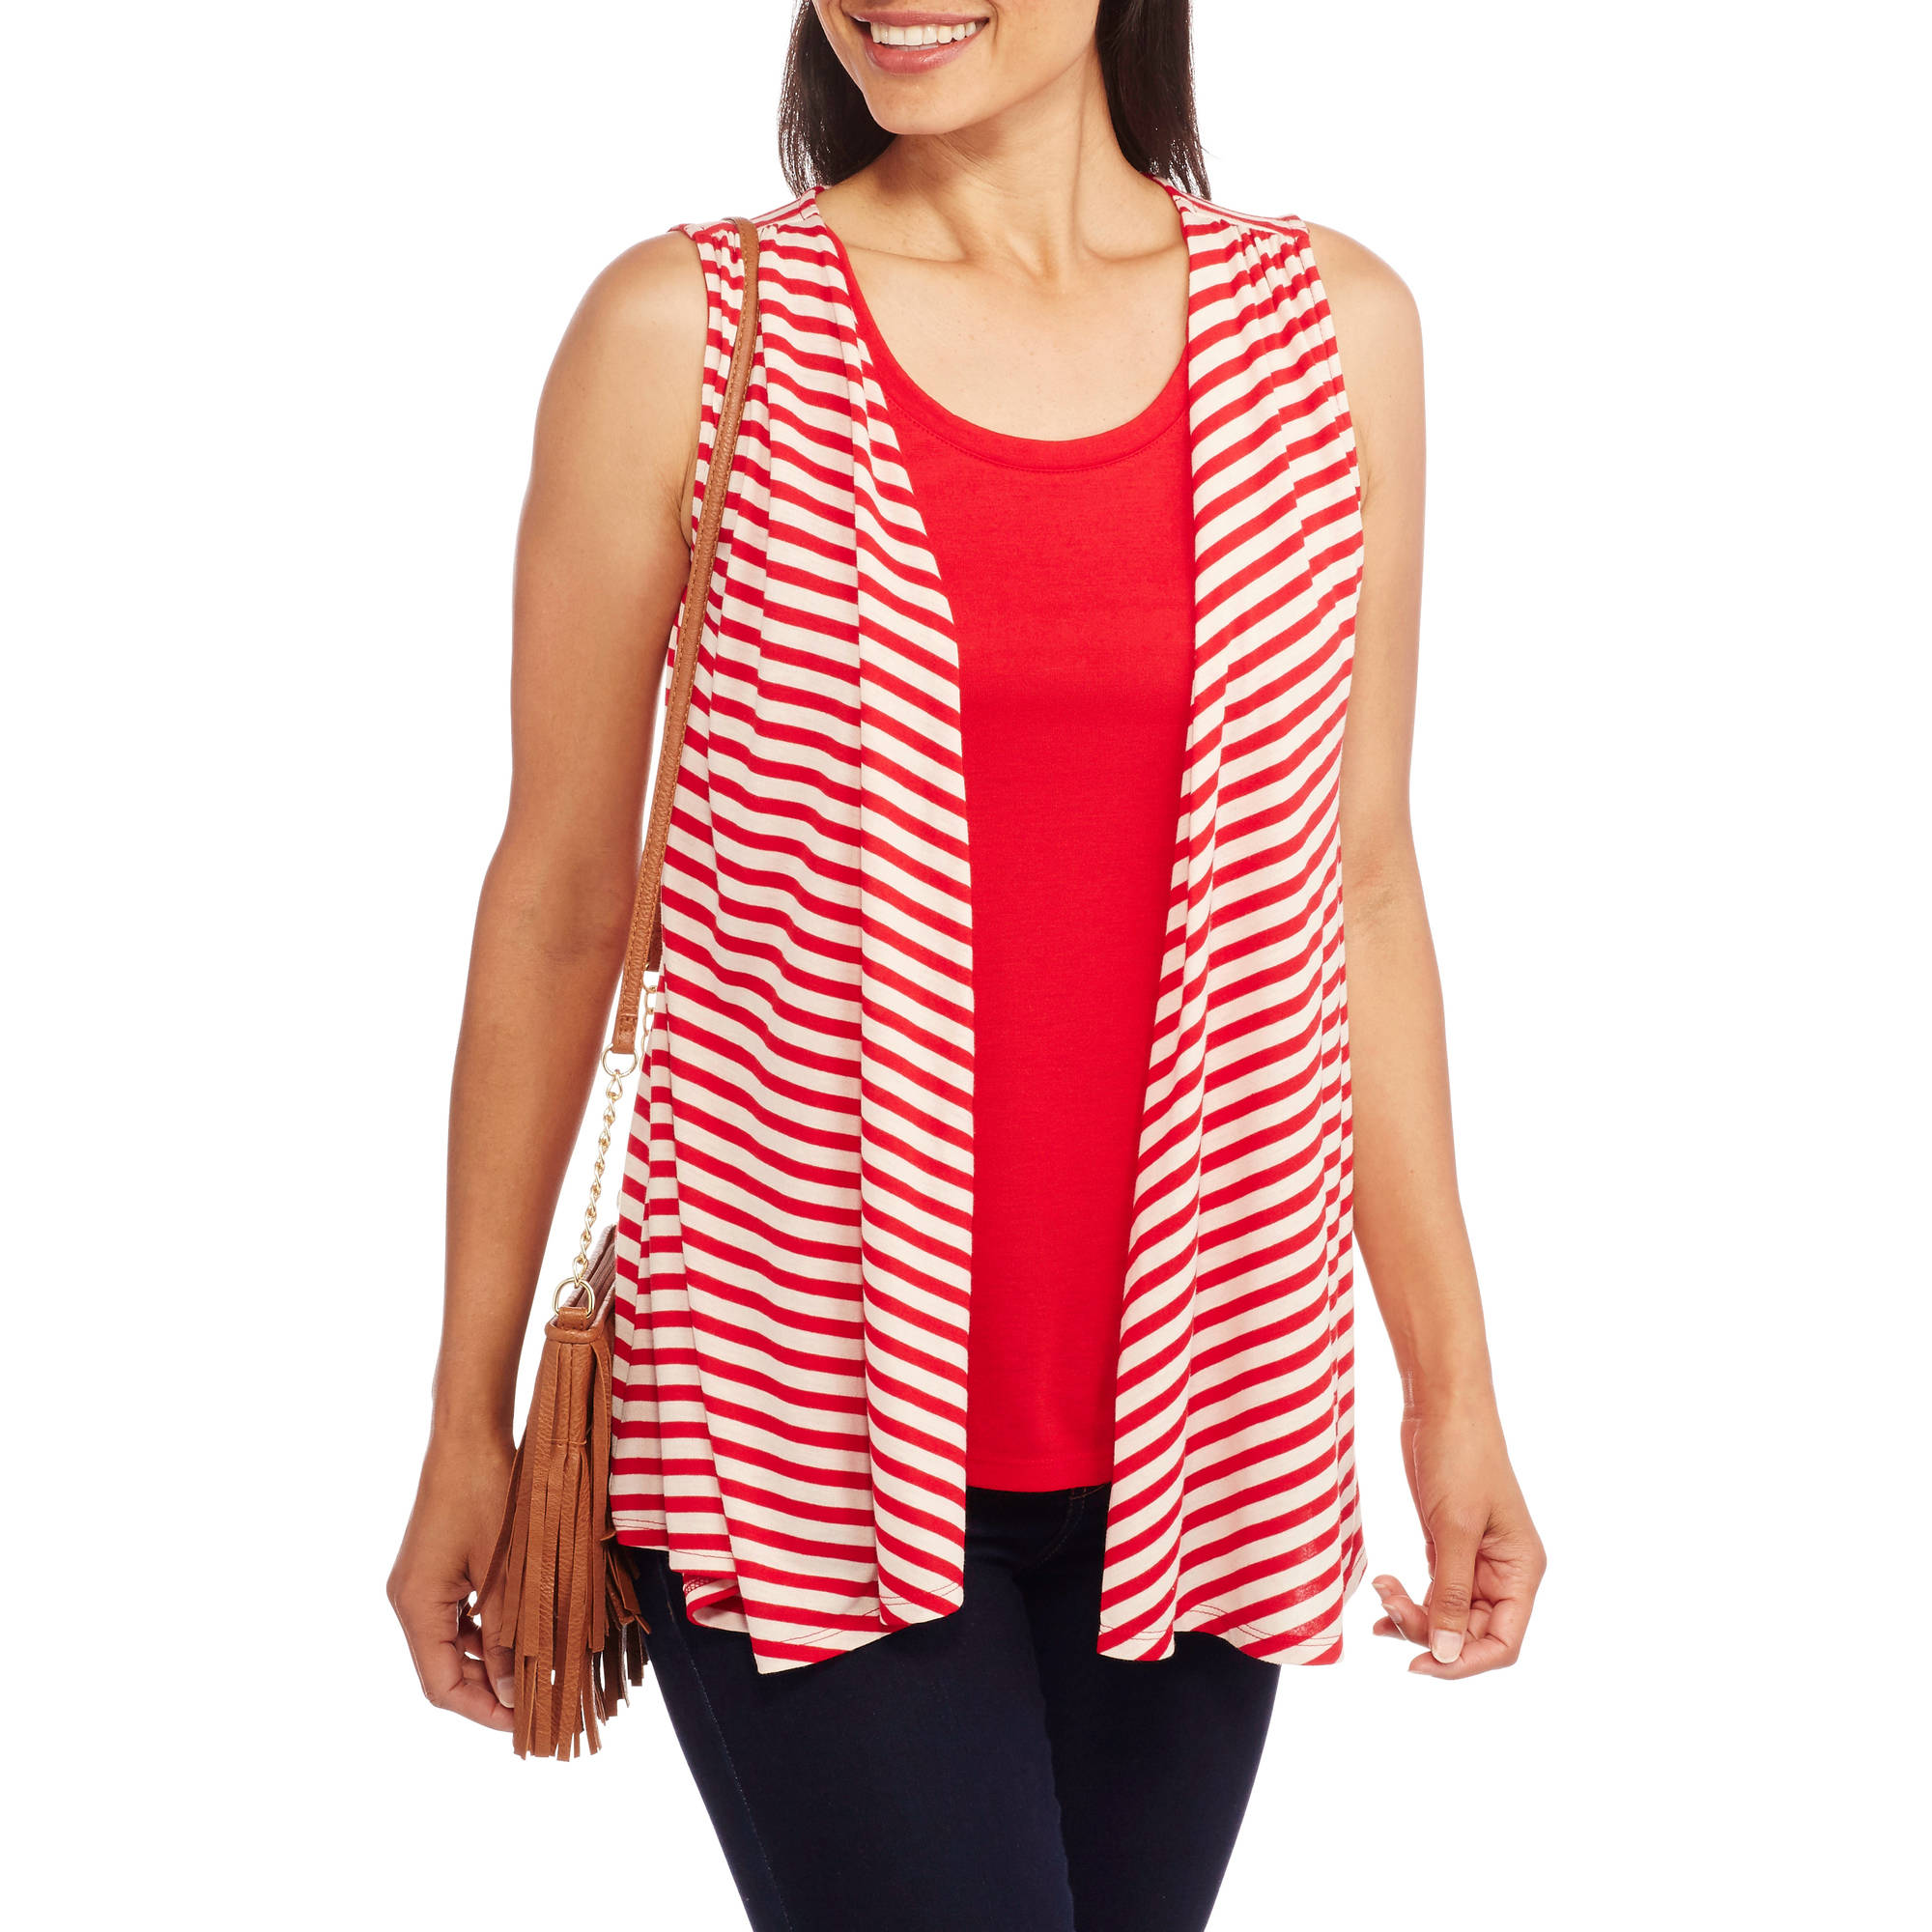 Faded Glory Women's Flyaway Cardigan 2fer Tank Top